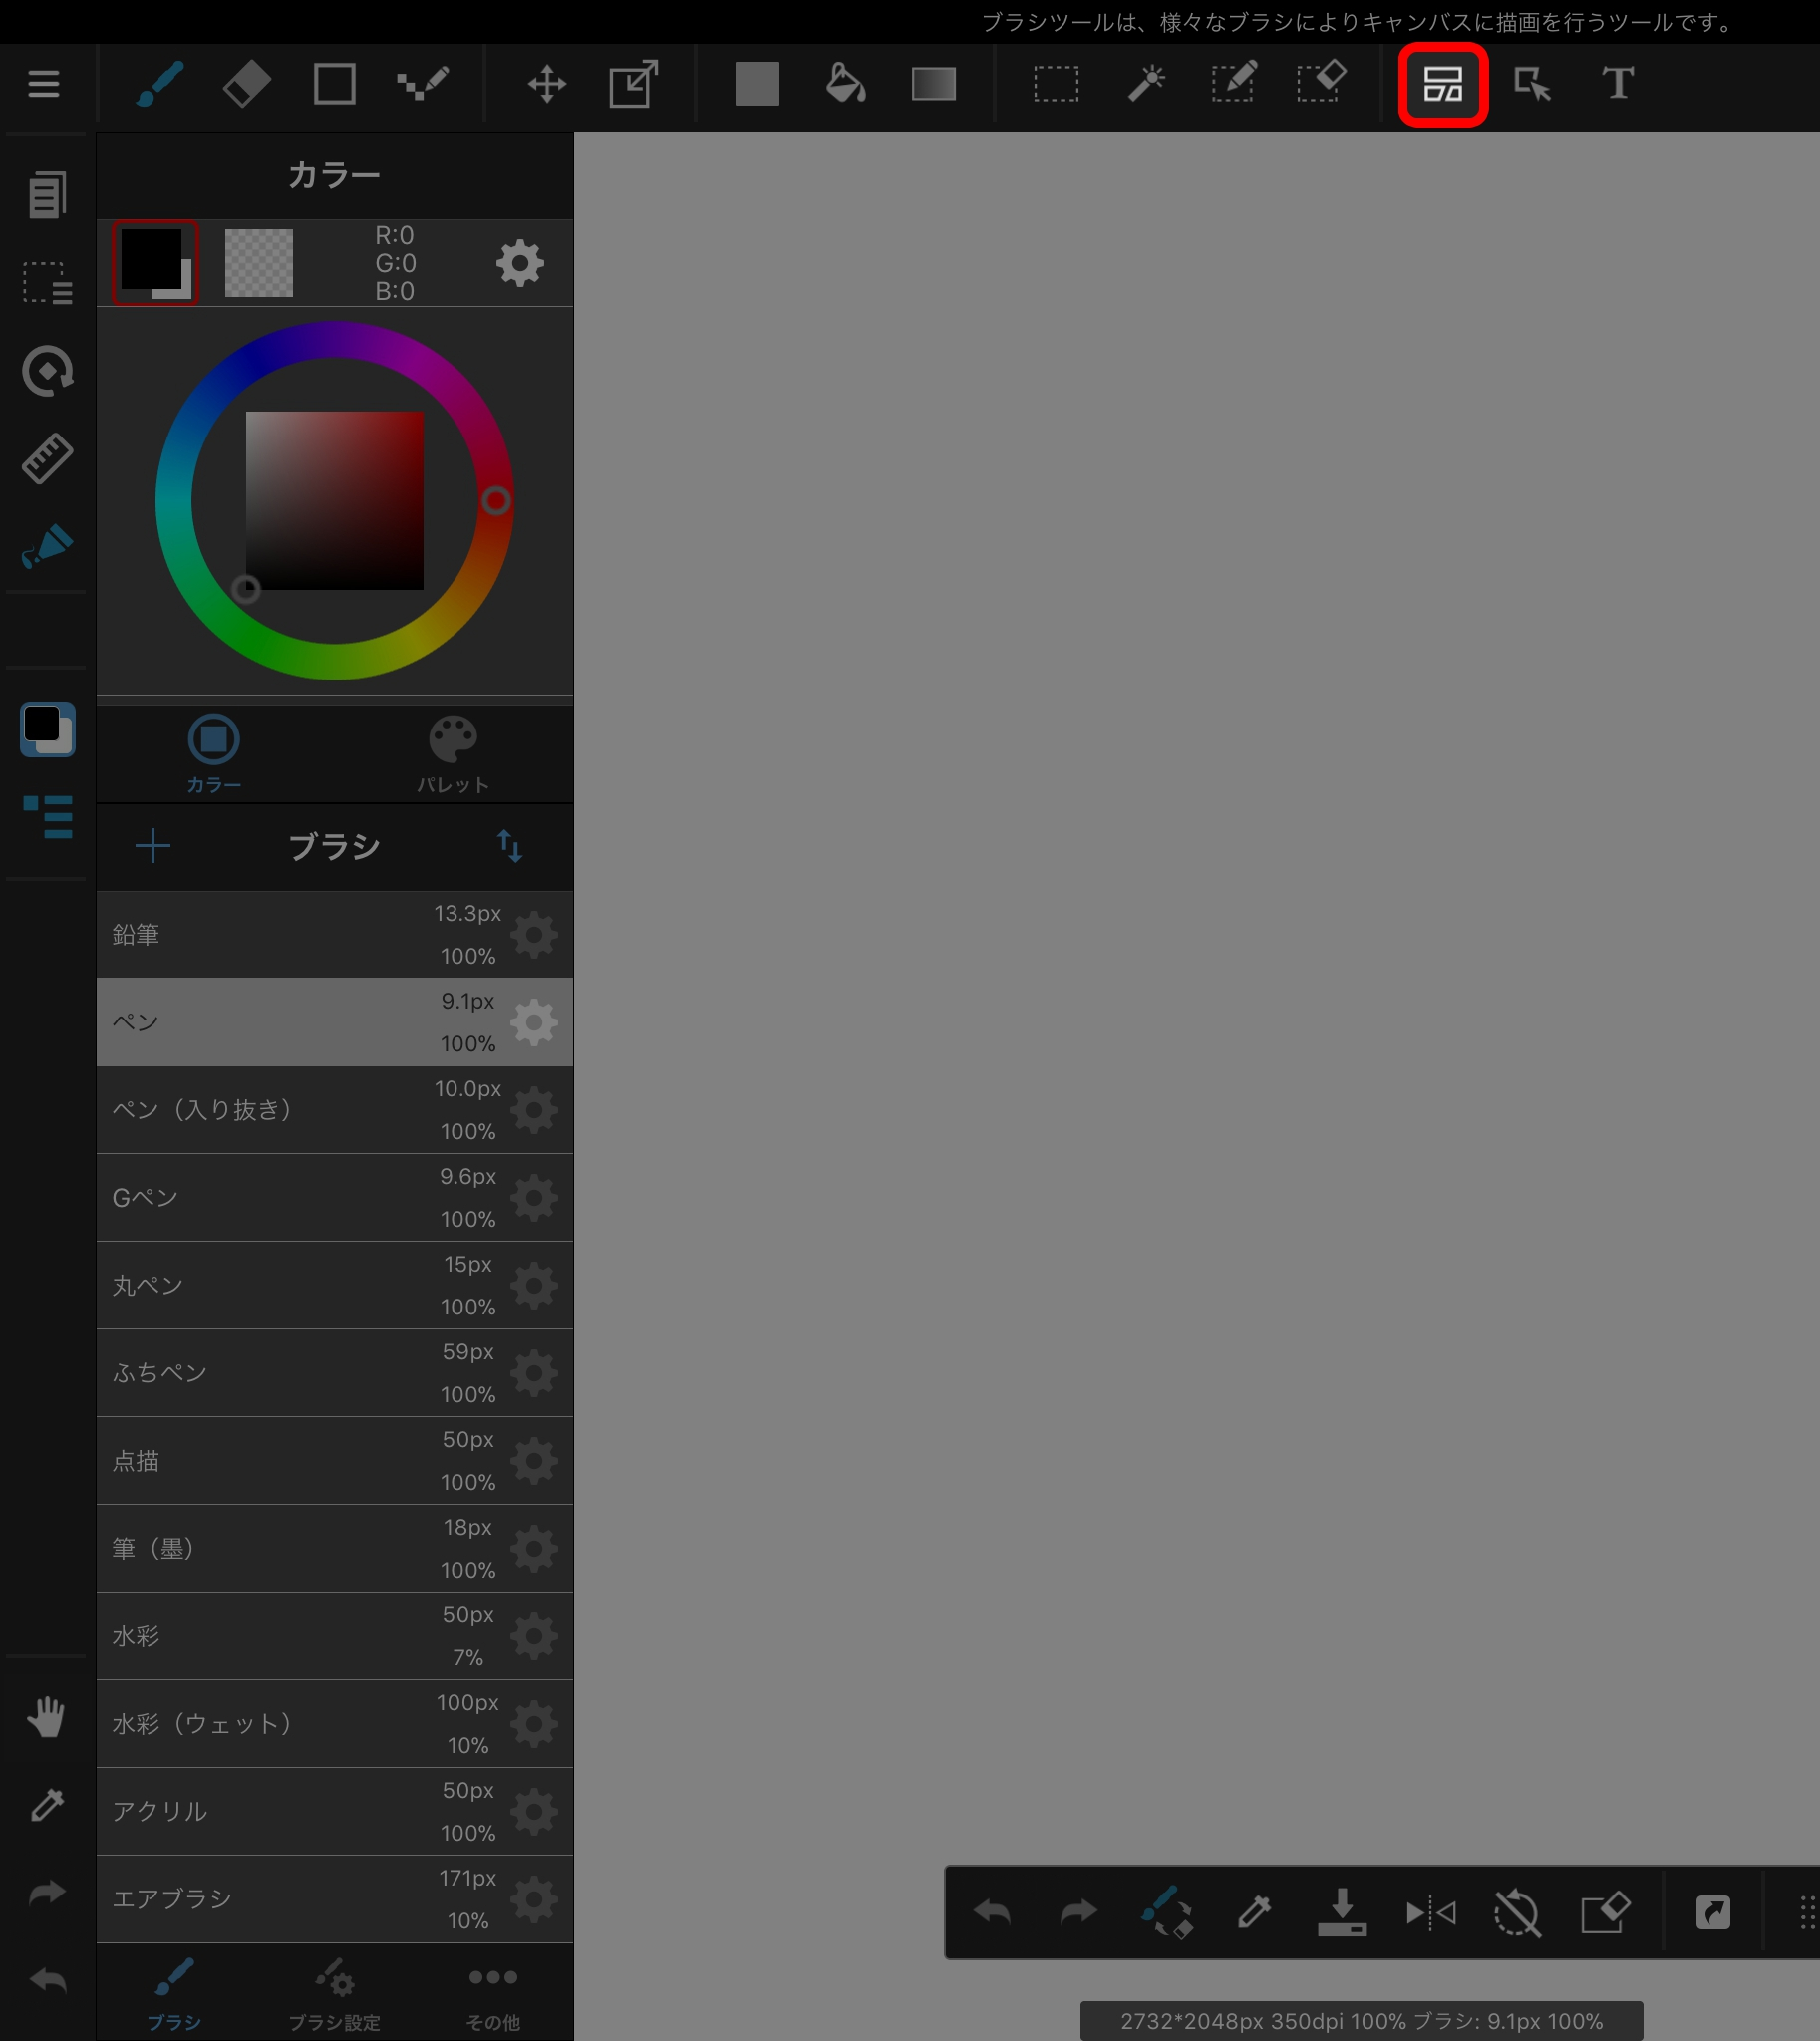 The Panel Layout Tool